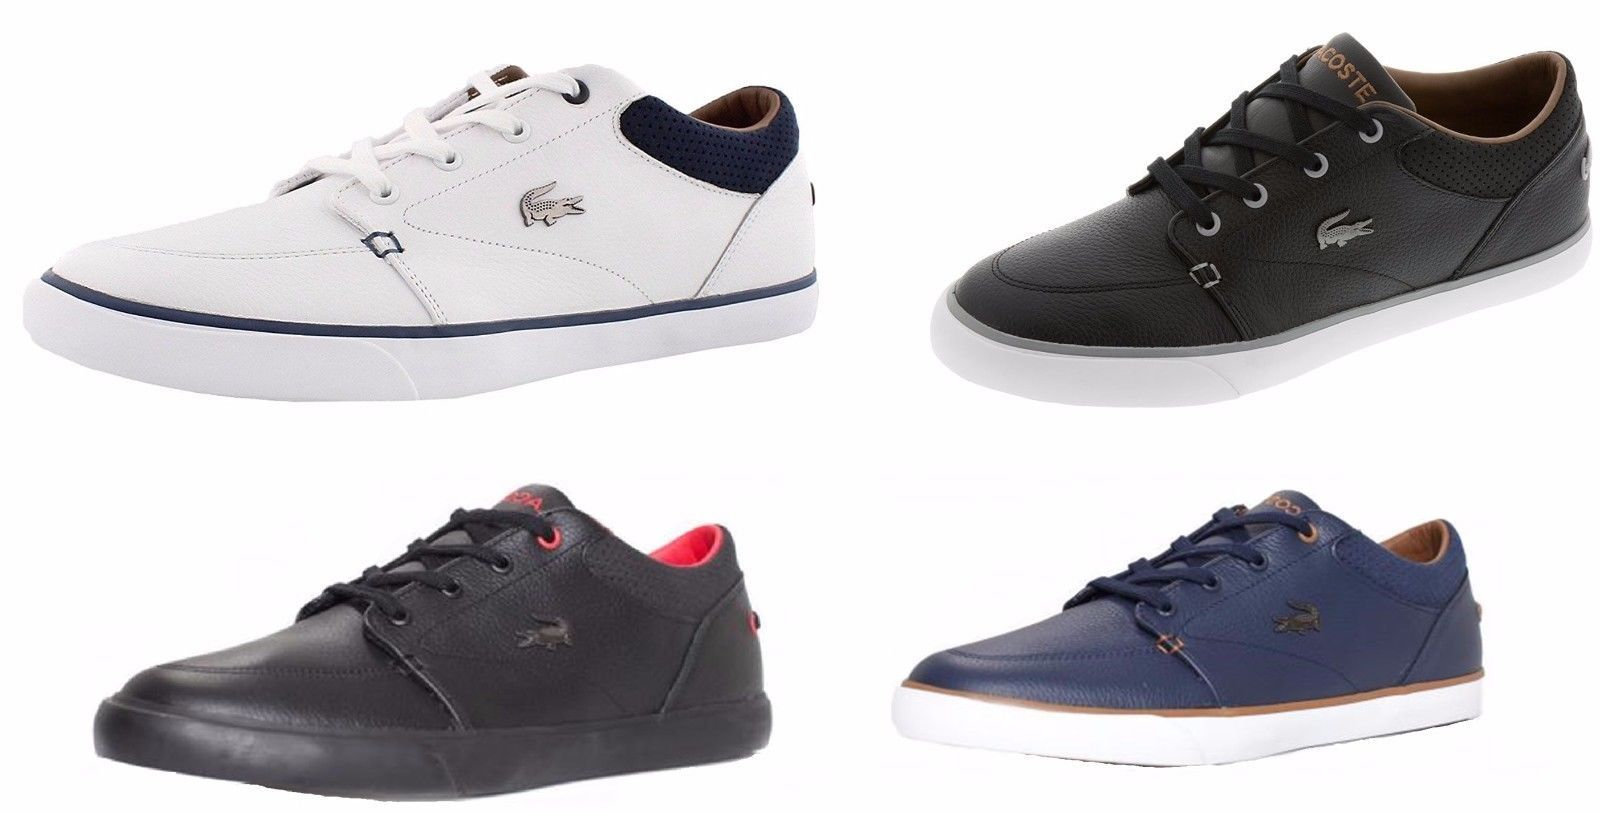 d0a695a76cca NEW Lacoste Men s Casual Shoes Bayliss Vulc 317 US Cam Fashion Lace Up  Sneakers